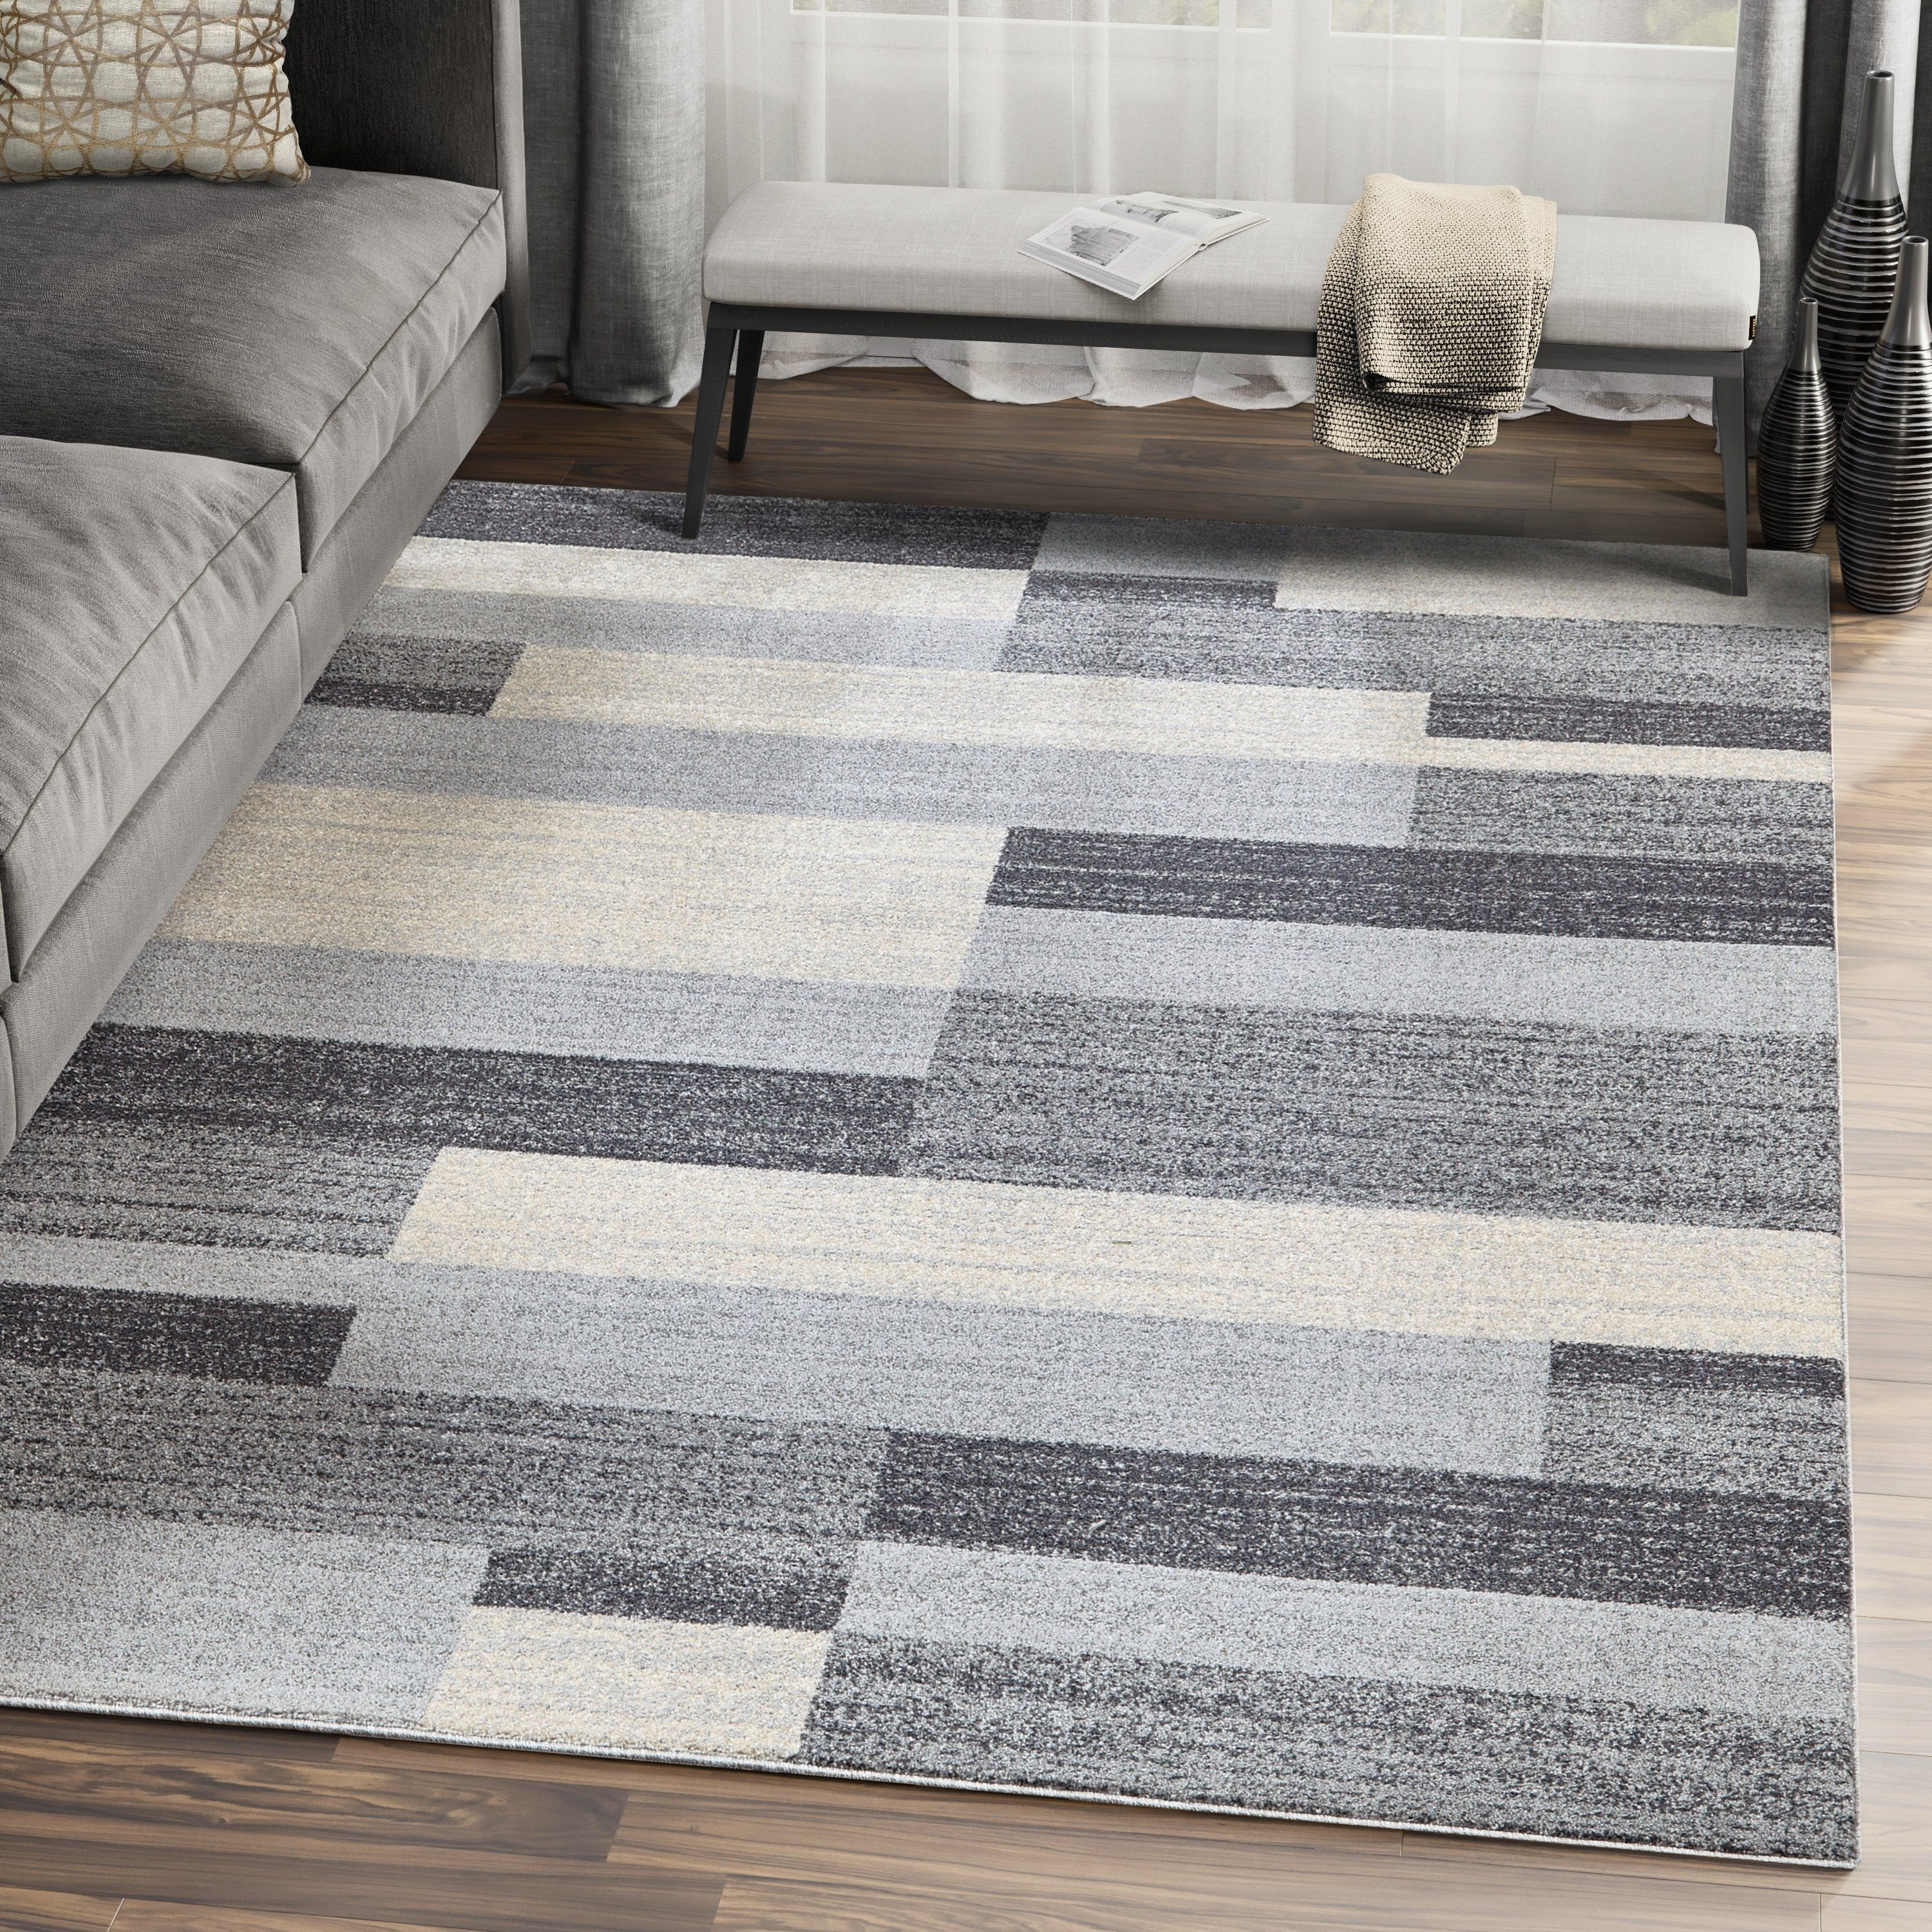 Best Grey Beige Geometric Tiles Area Rug 5 X 8 Grey Gray 400 x 300